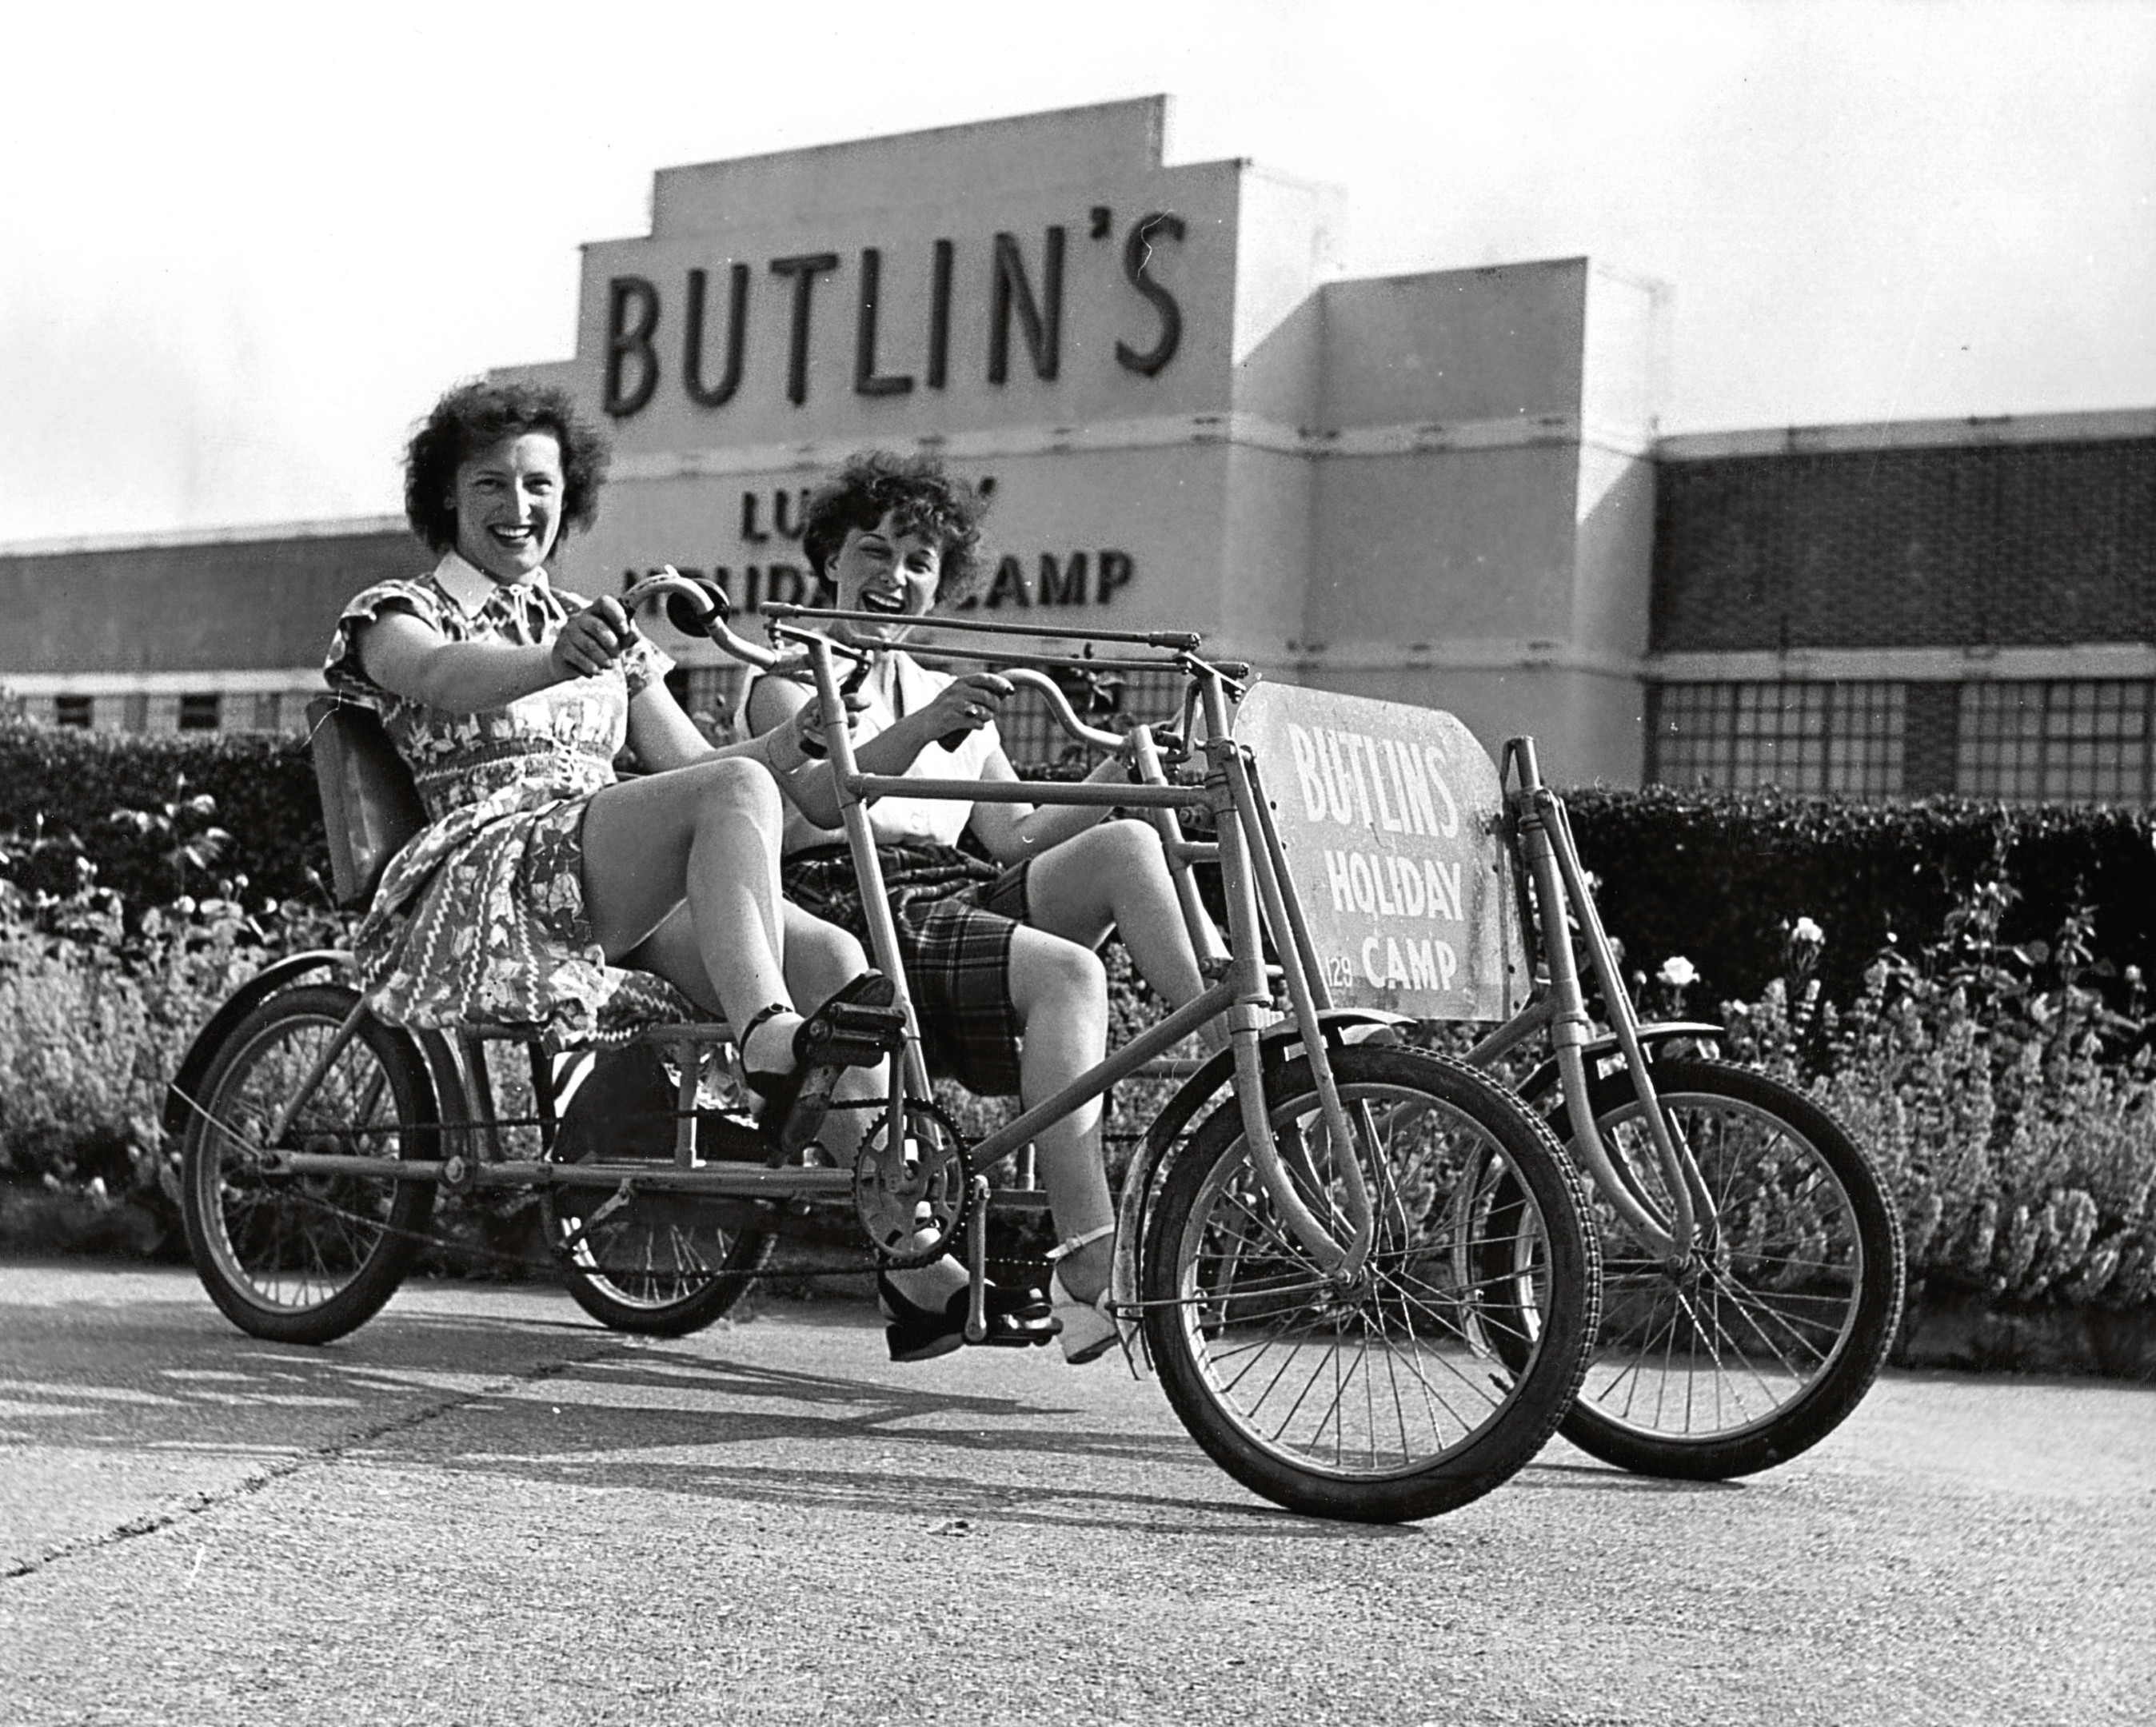 Holidaymakers riding a bicycle for two at Butlin's Holiday Camp in Clacton.    (Hulton Archive/Getty Images)